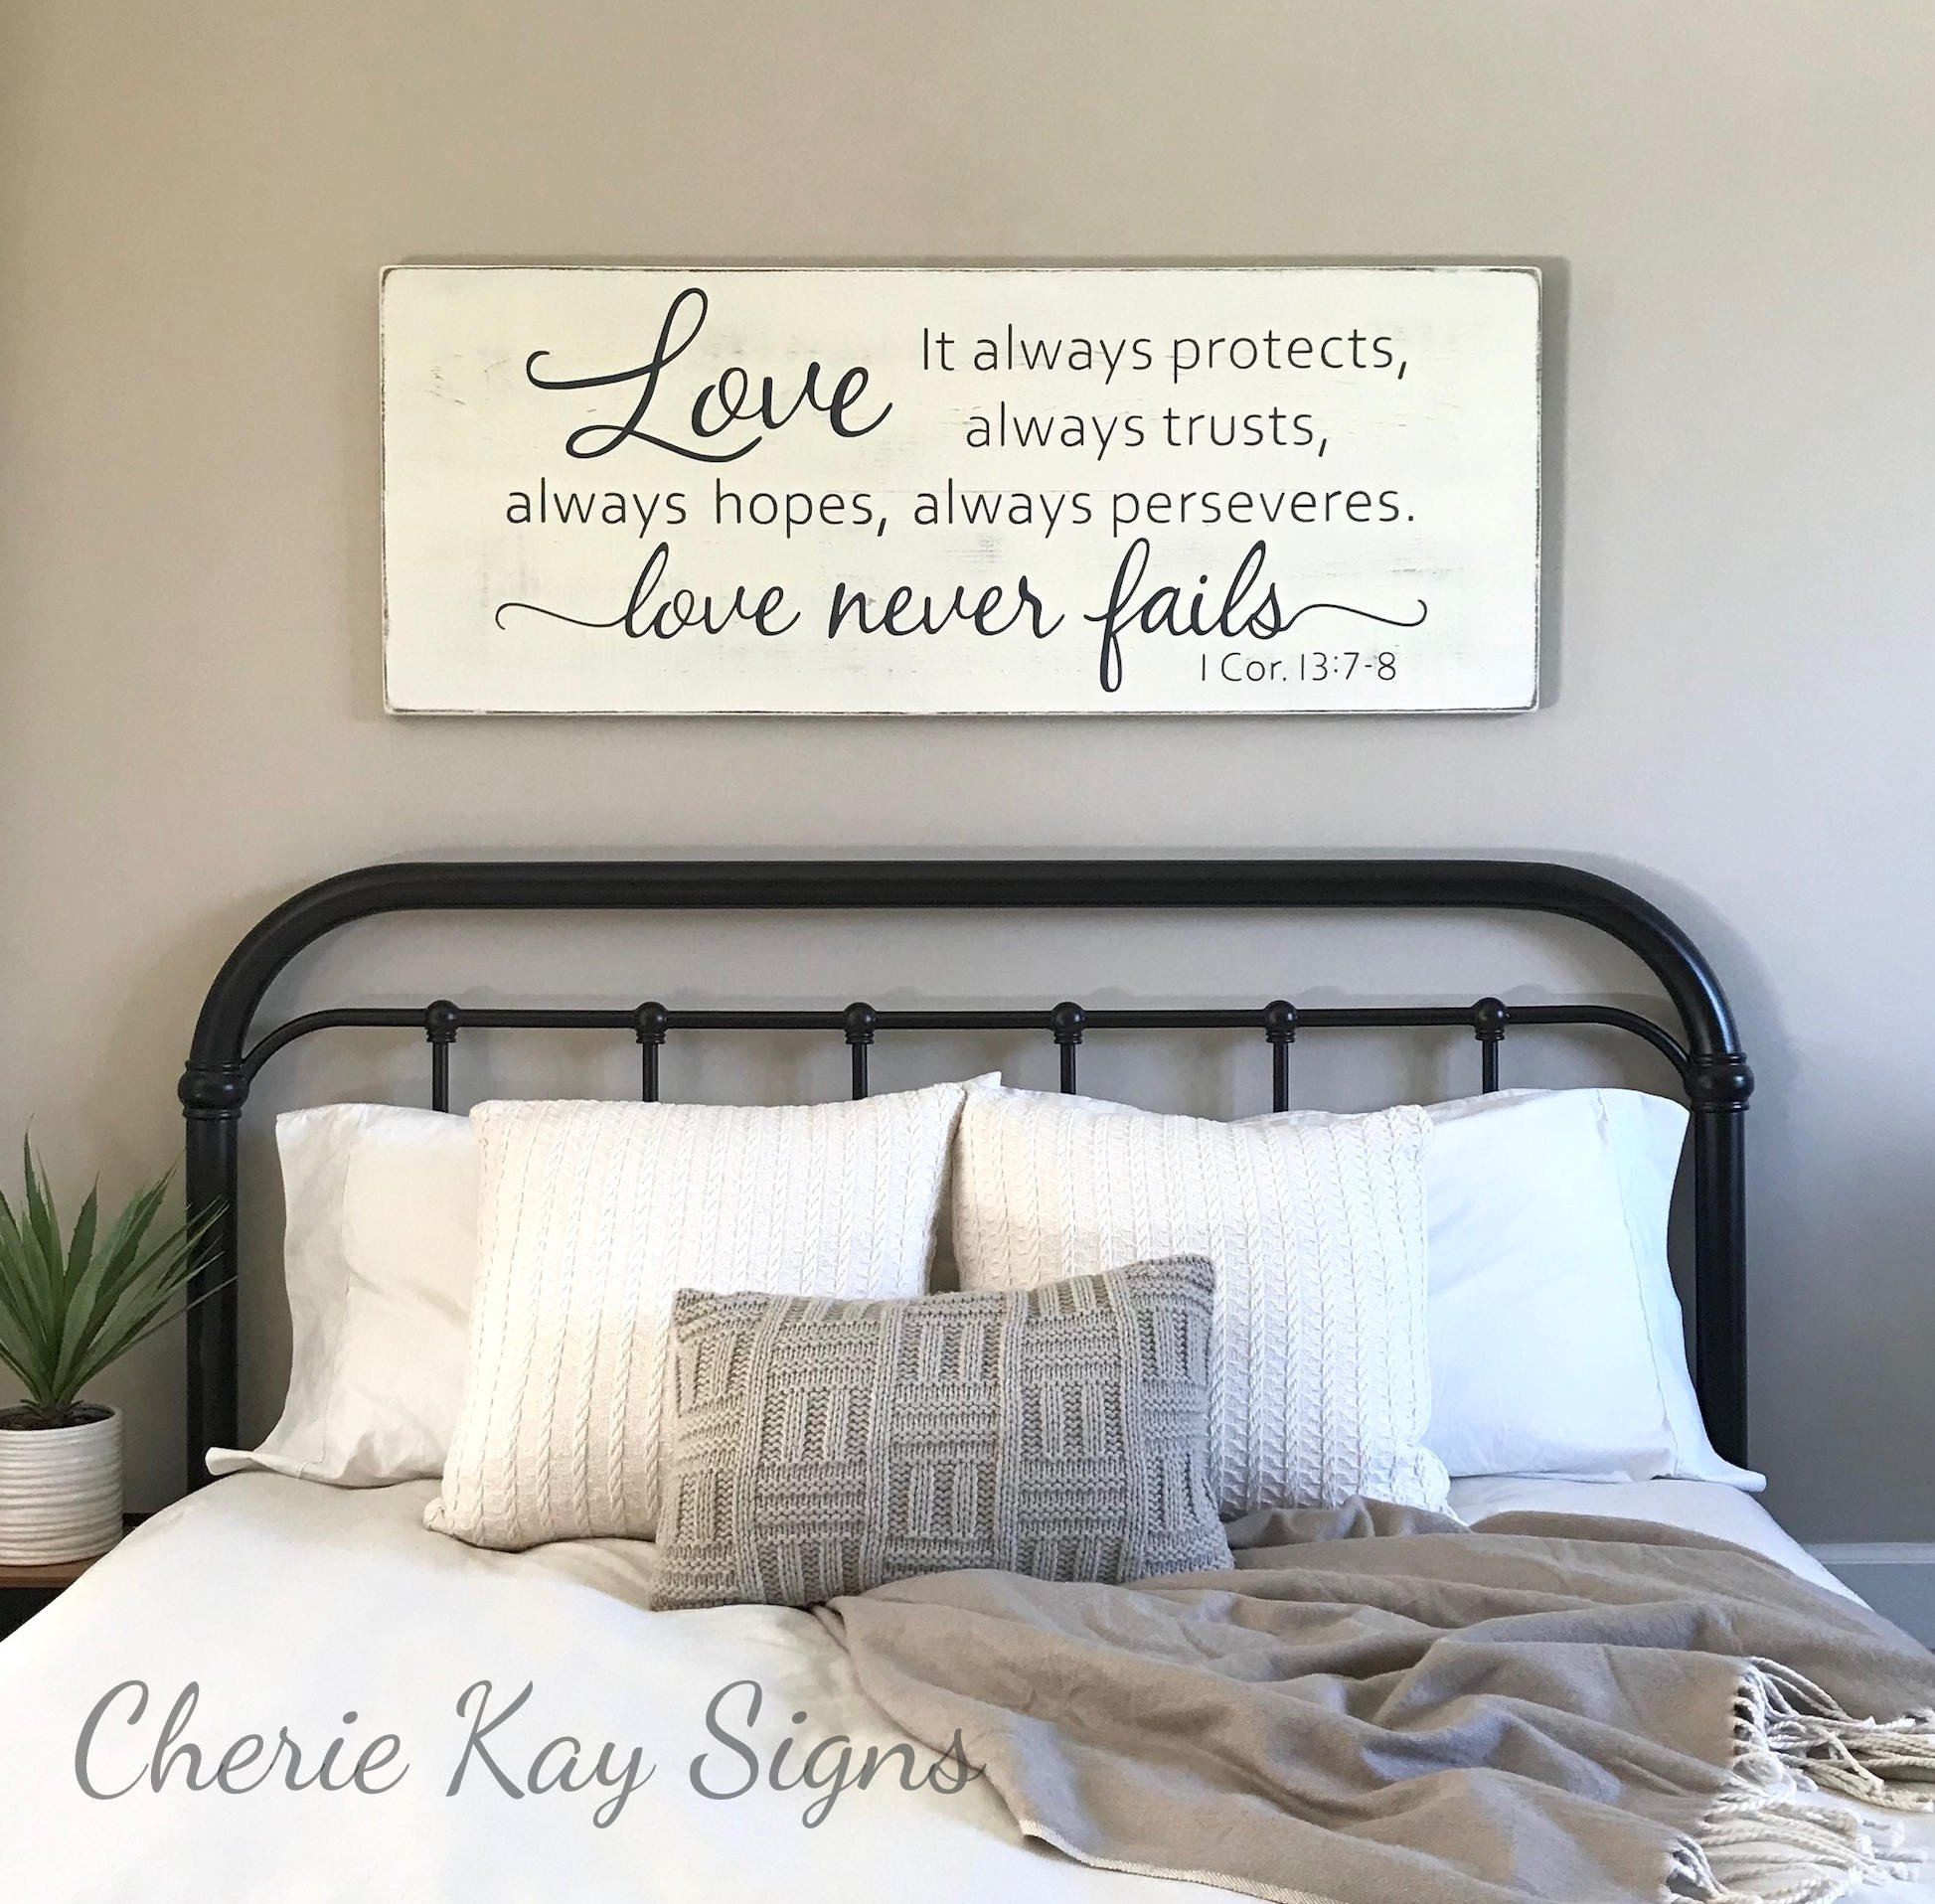 Wall Decor for Master Bedroom Inspirational Master Bedroom Wall Decor Love Never Fails 1 Corinthians